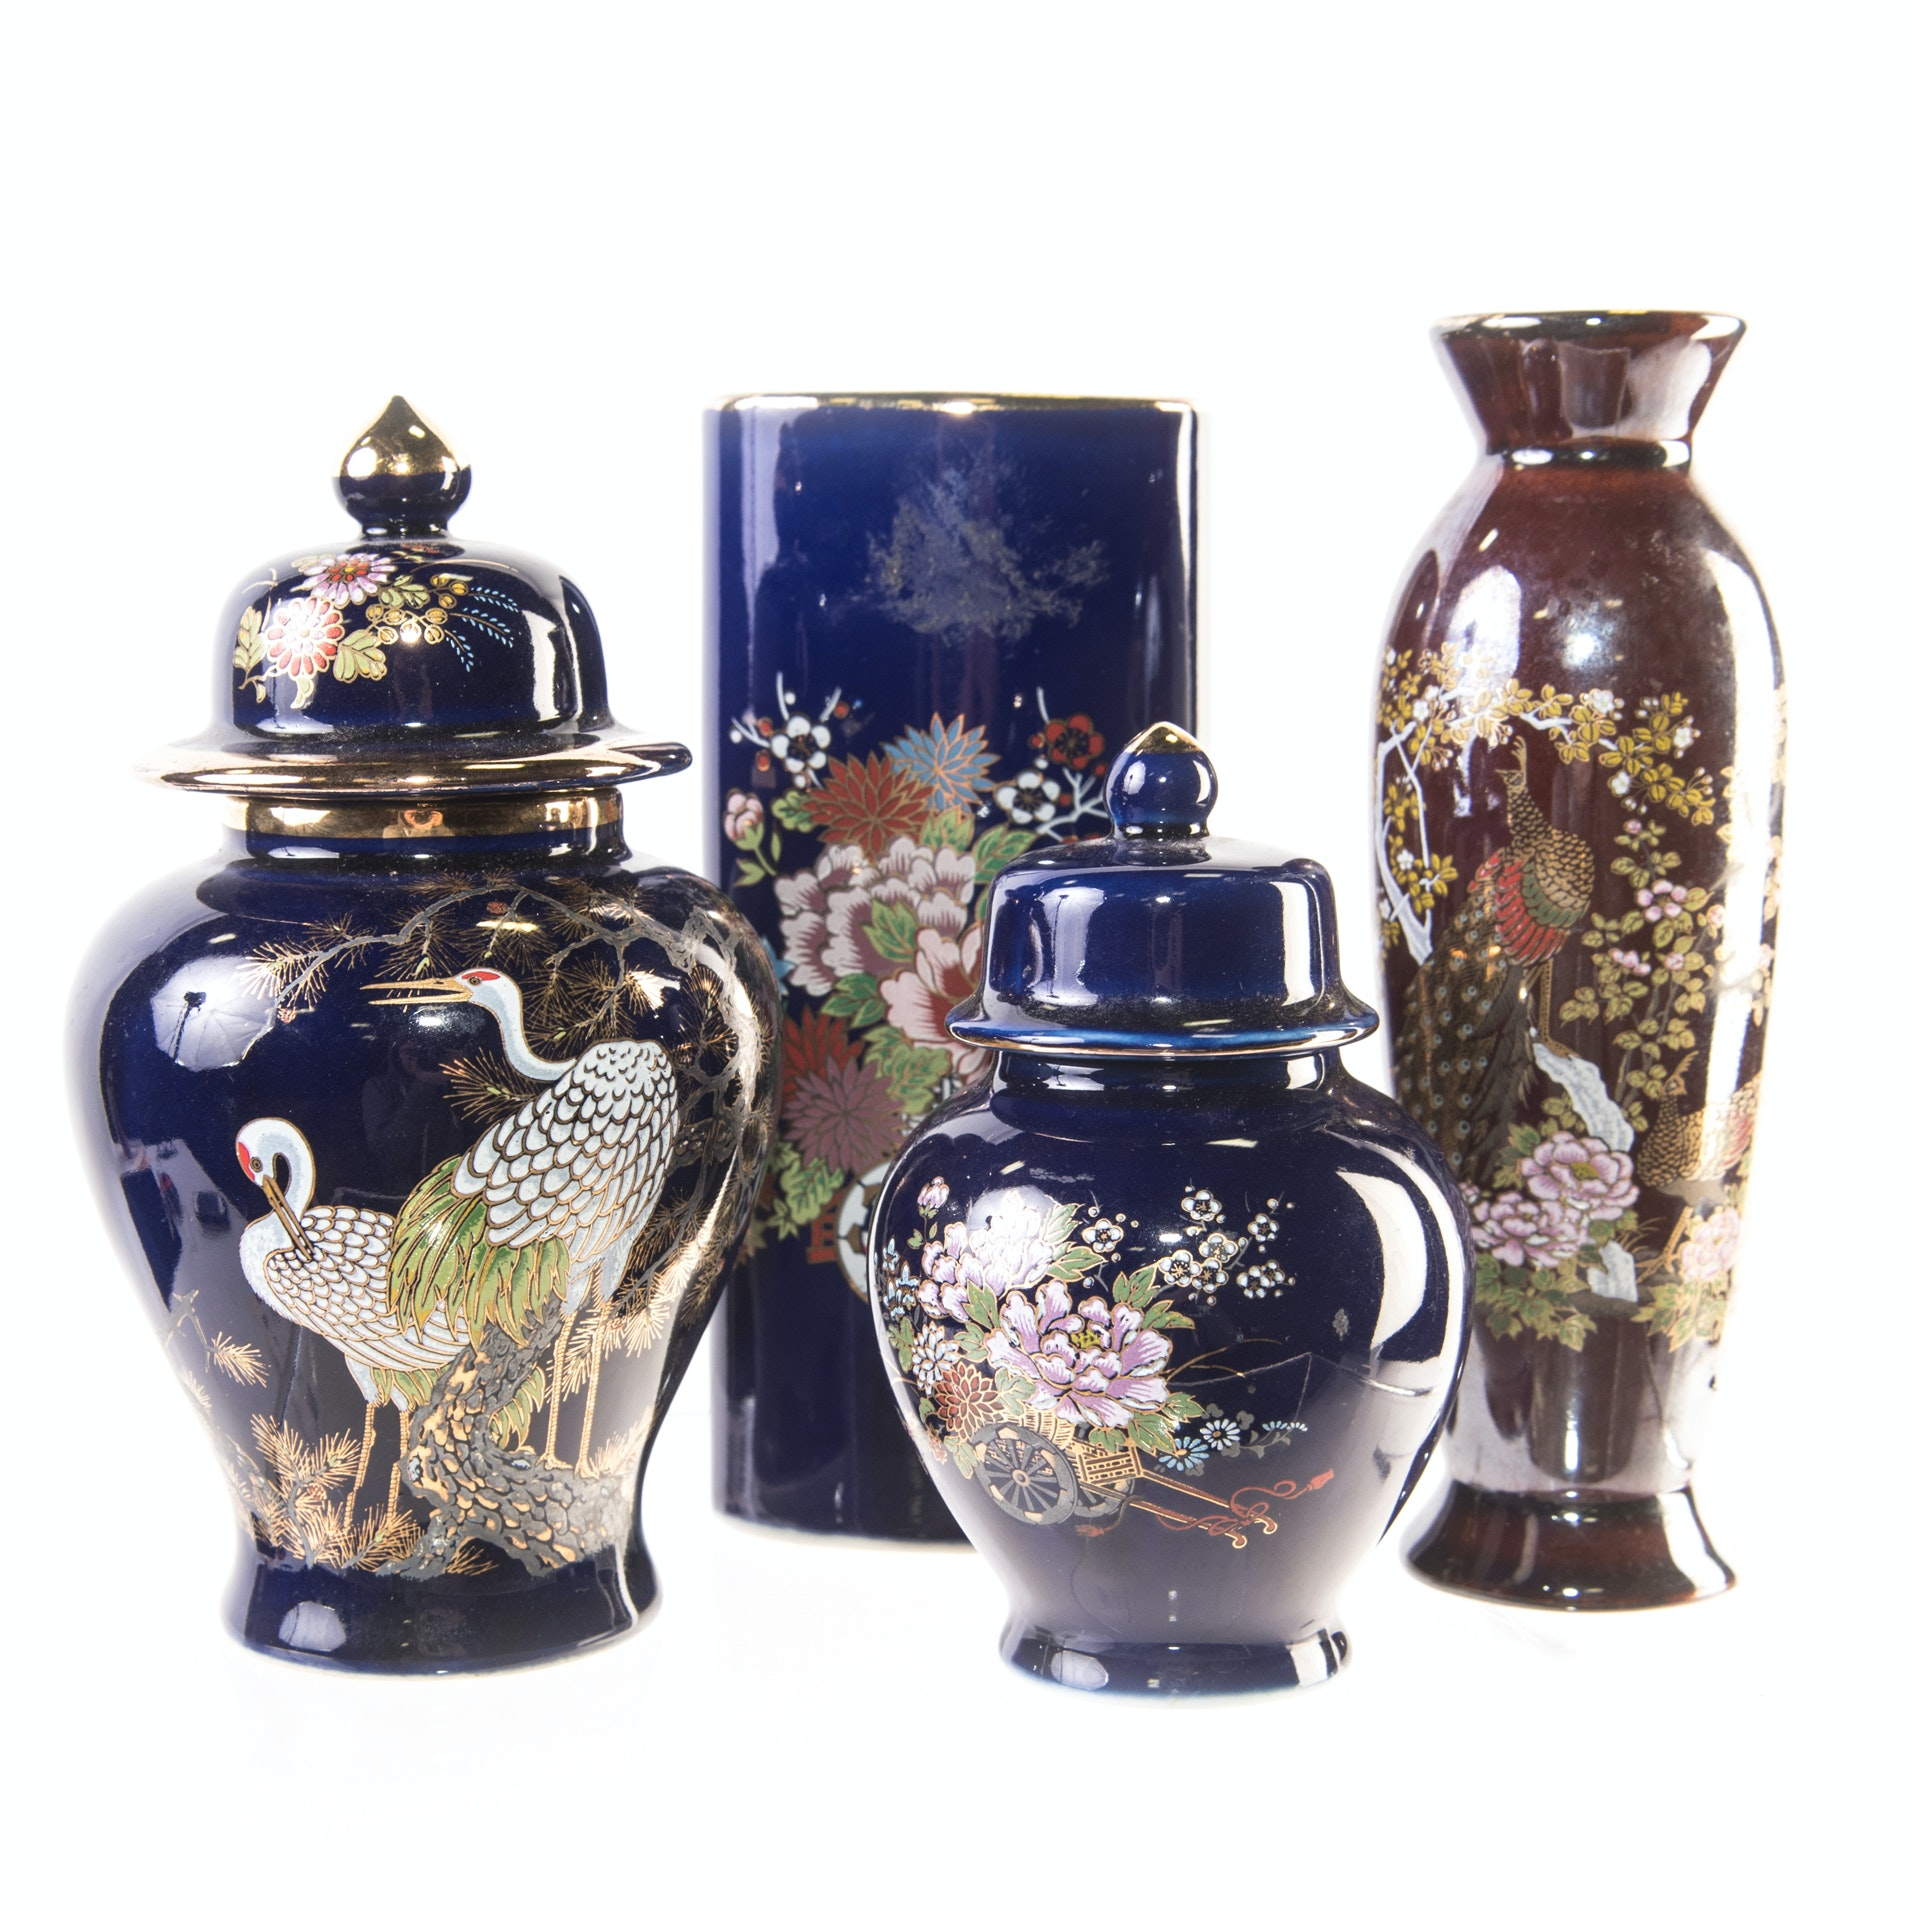 Petite Japanese Vases and Ginger Jars